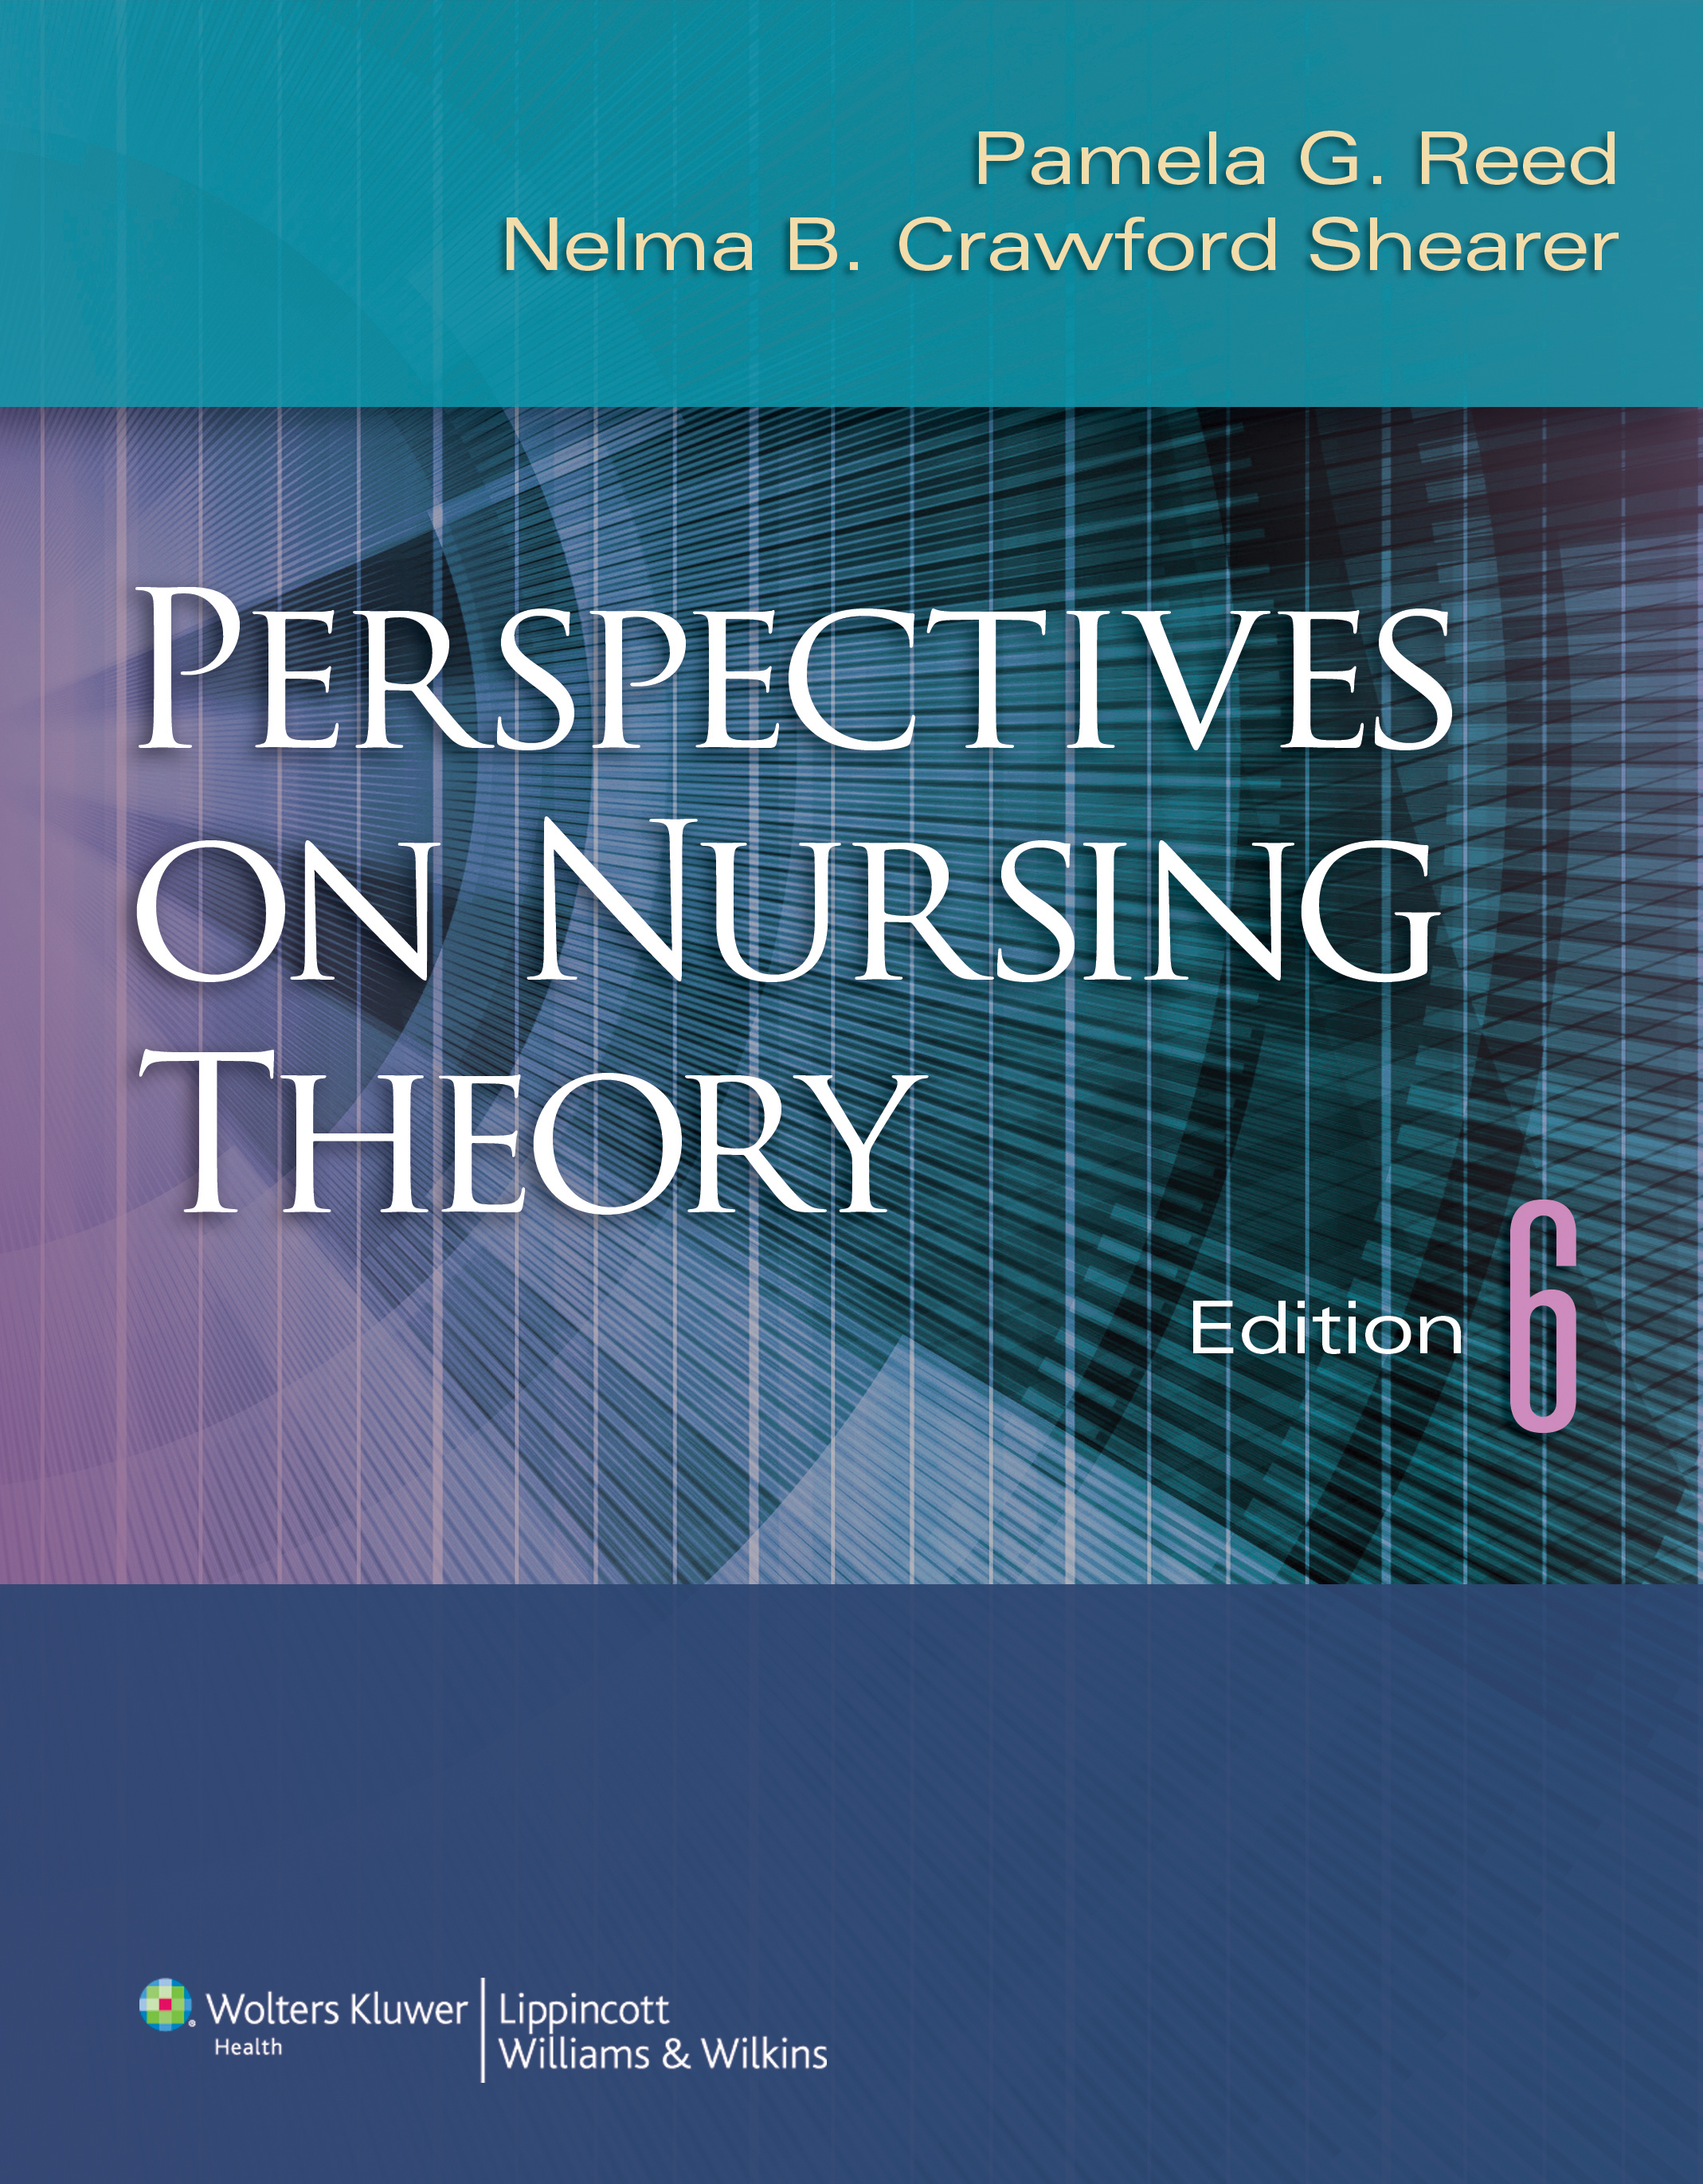 on nursing theories Background: nursing theory should provide the principles that underpin practice and help to generate further nursing knowledge however, a lack of agreement in the professional literature on nursing theory confuses nurses and has caused many to dismiss nursing theory as irrelevant to practice this.